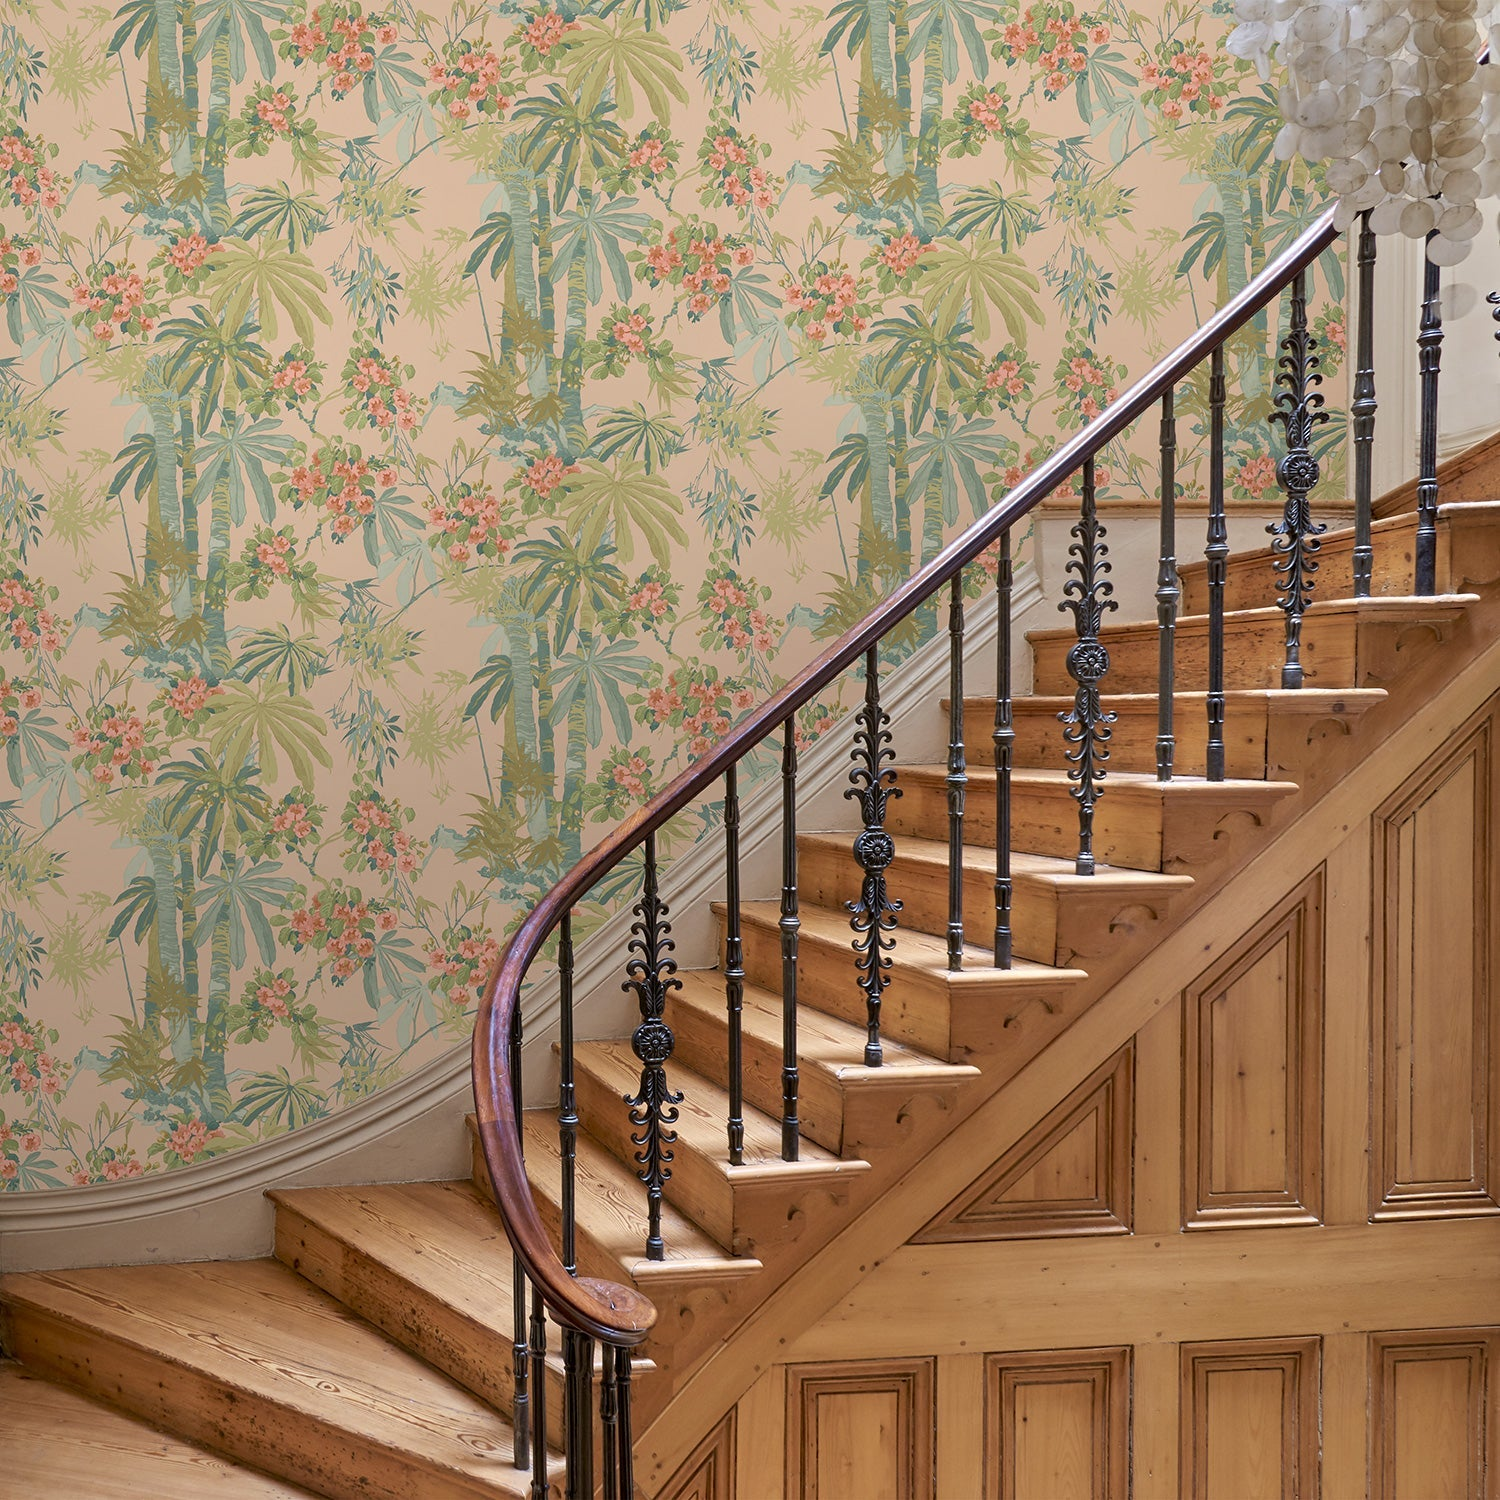 Hallway featuring a Designer wallpaper with a pink tropical palm tree design